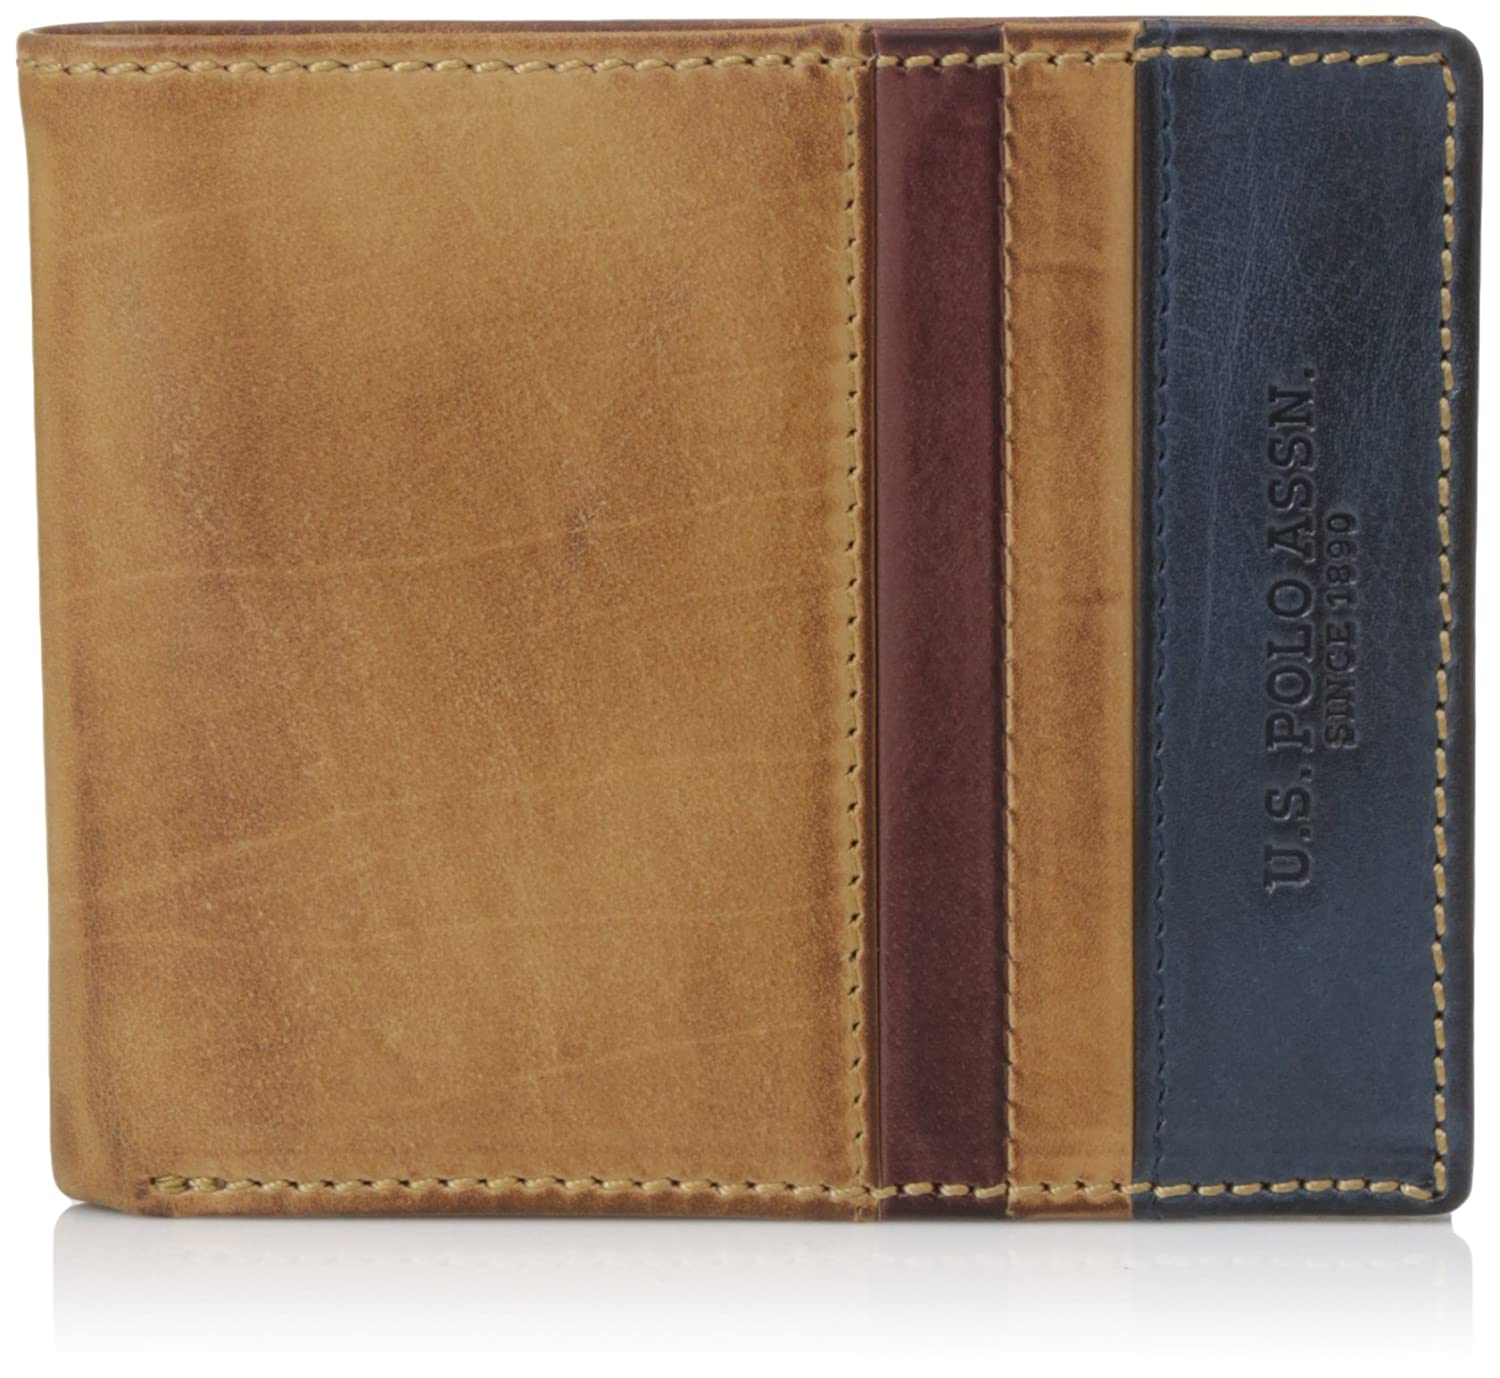 d458e789af US Polo Association Tan Navy Men s Wallet (USAW0574)  Amazon.in ...